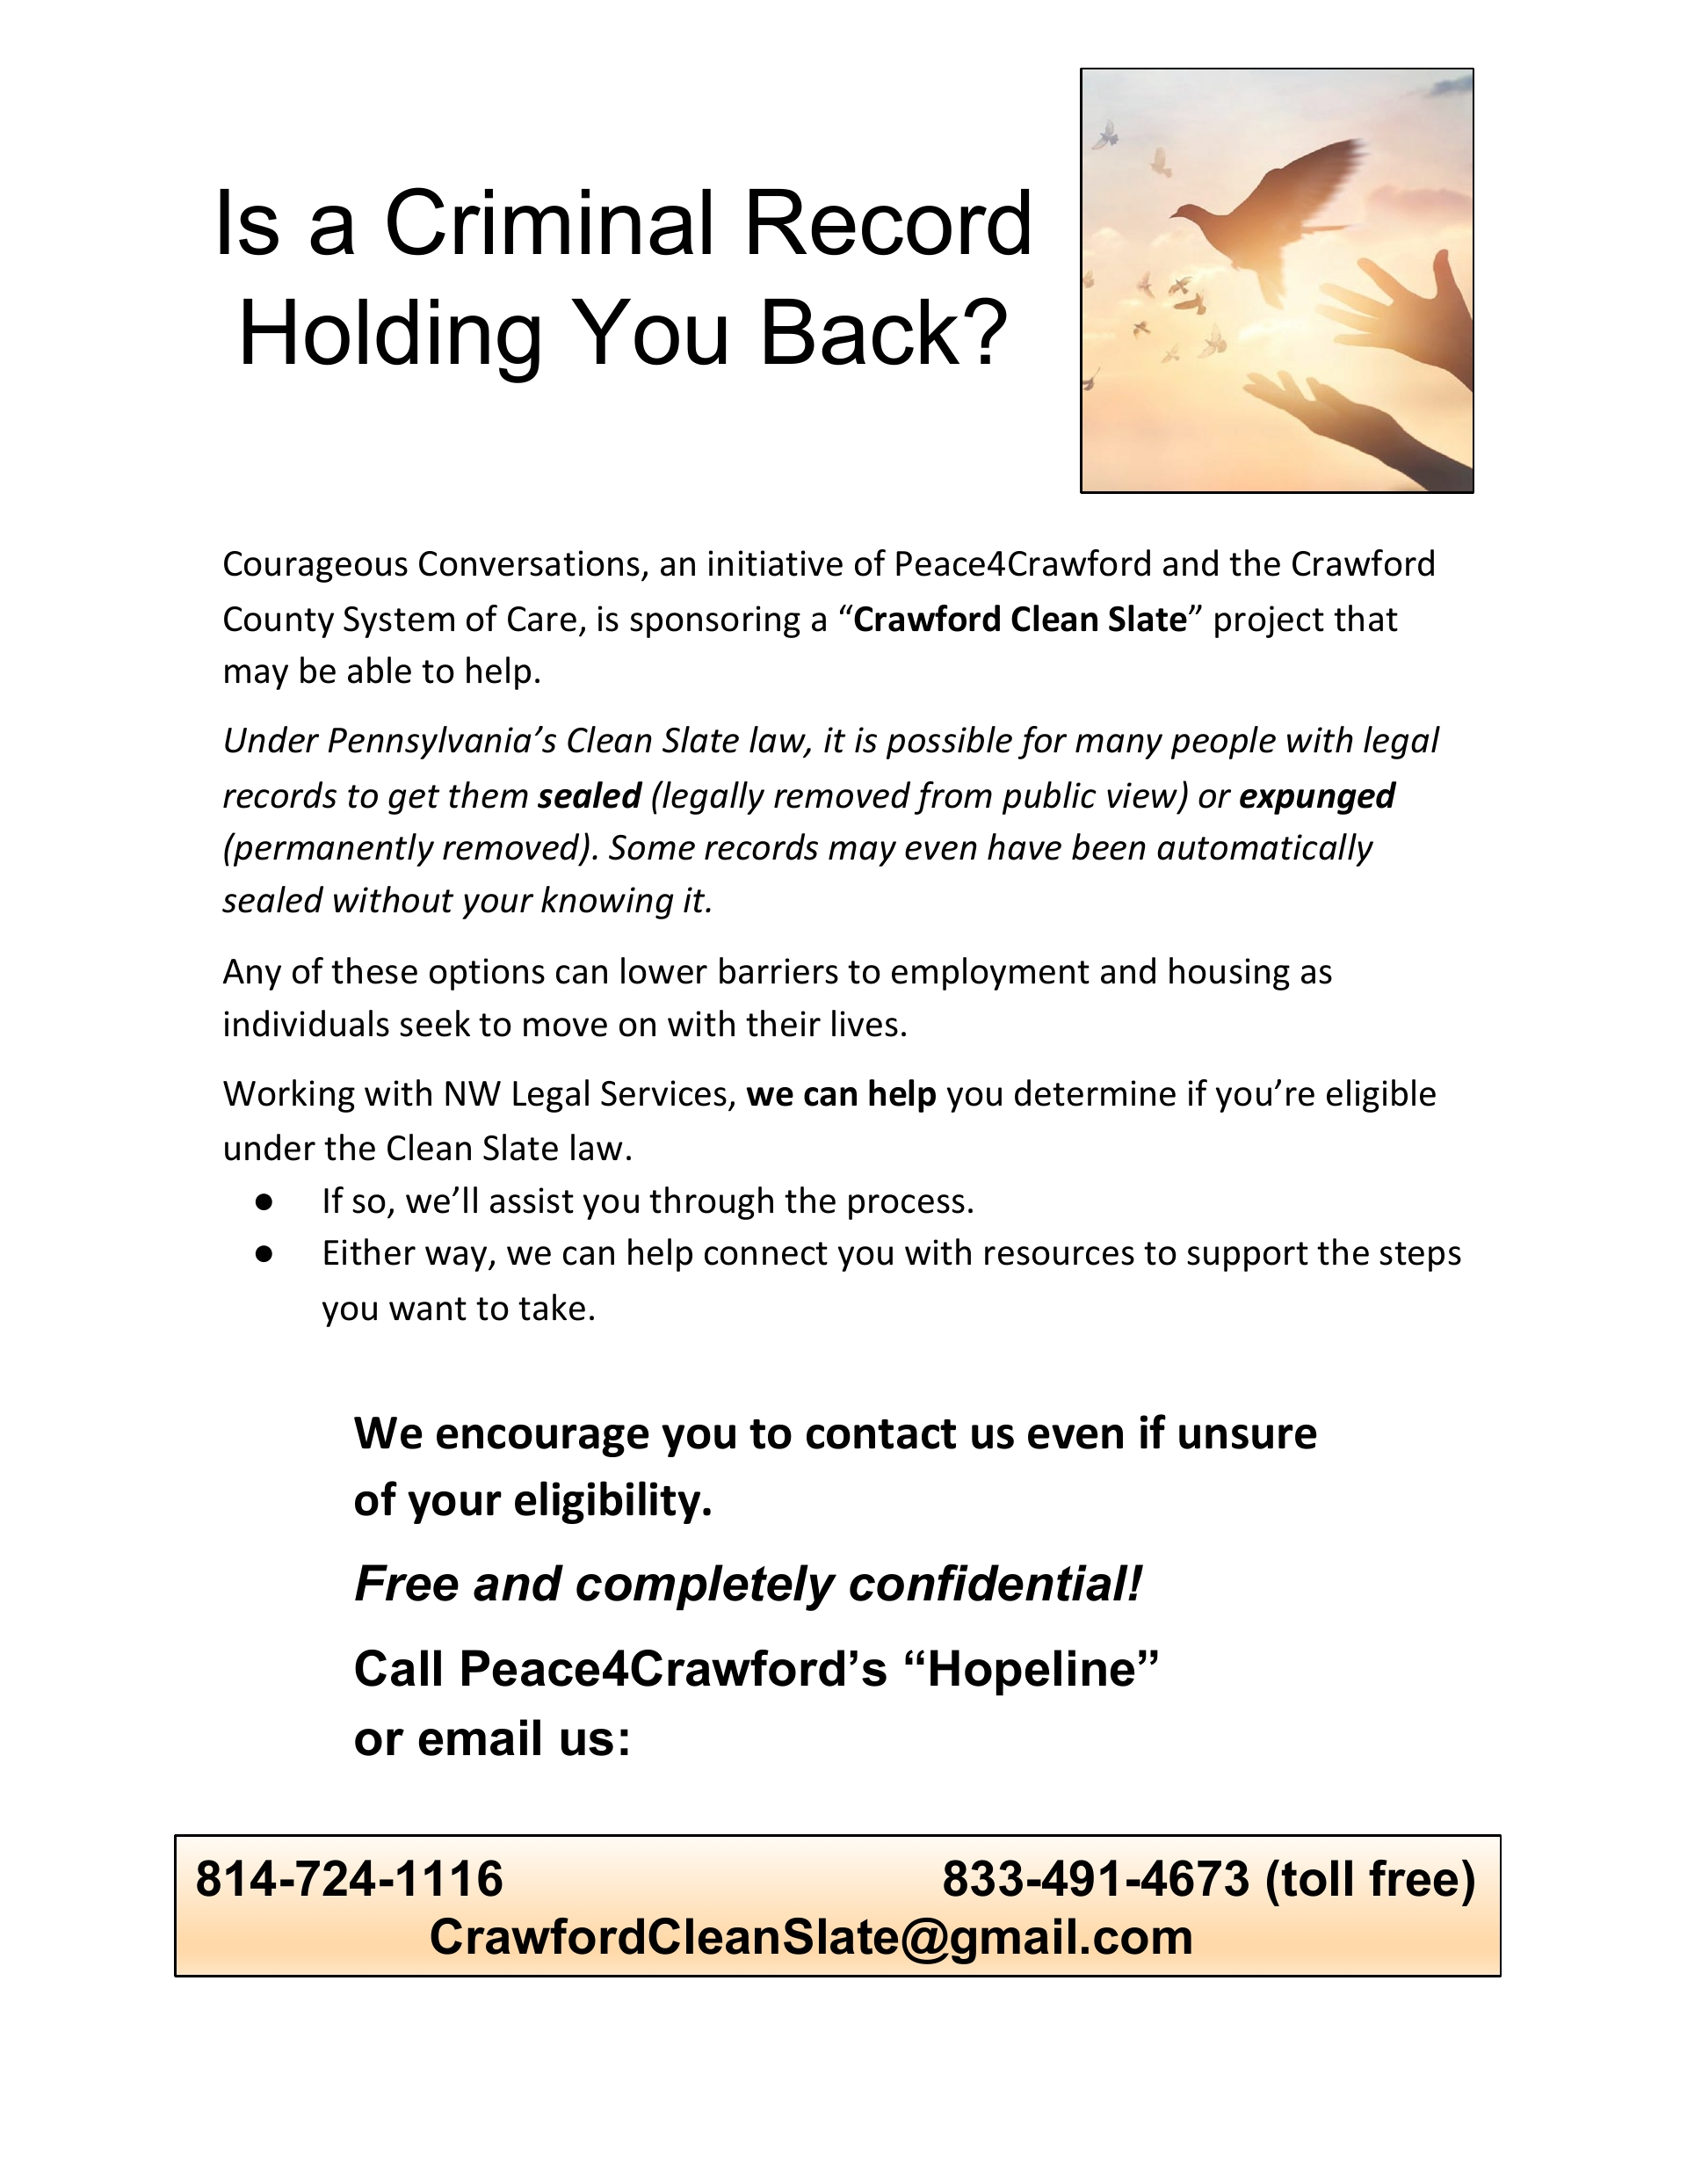 Is a Criminal Record Holding You Back? Crawford County Initiative